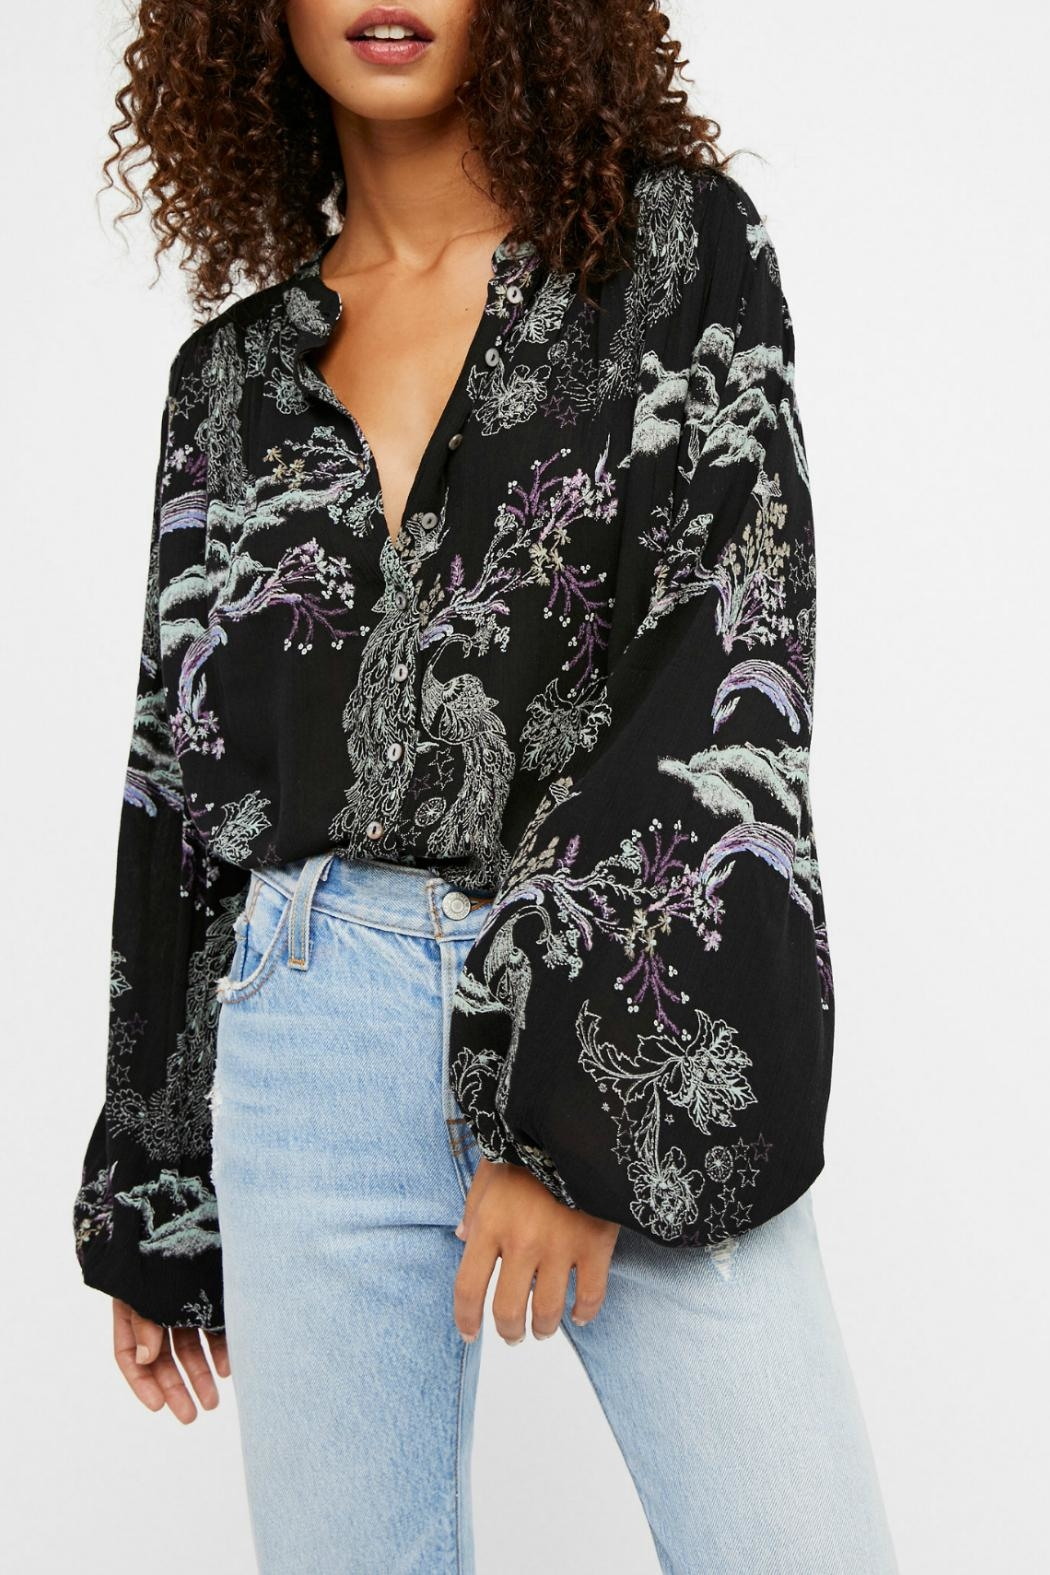 Free People Metallic Bloom Printed Top - Front Cropped Image